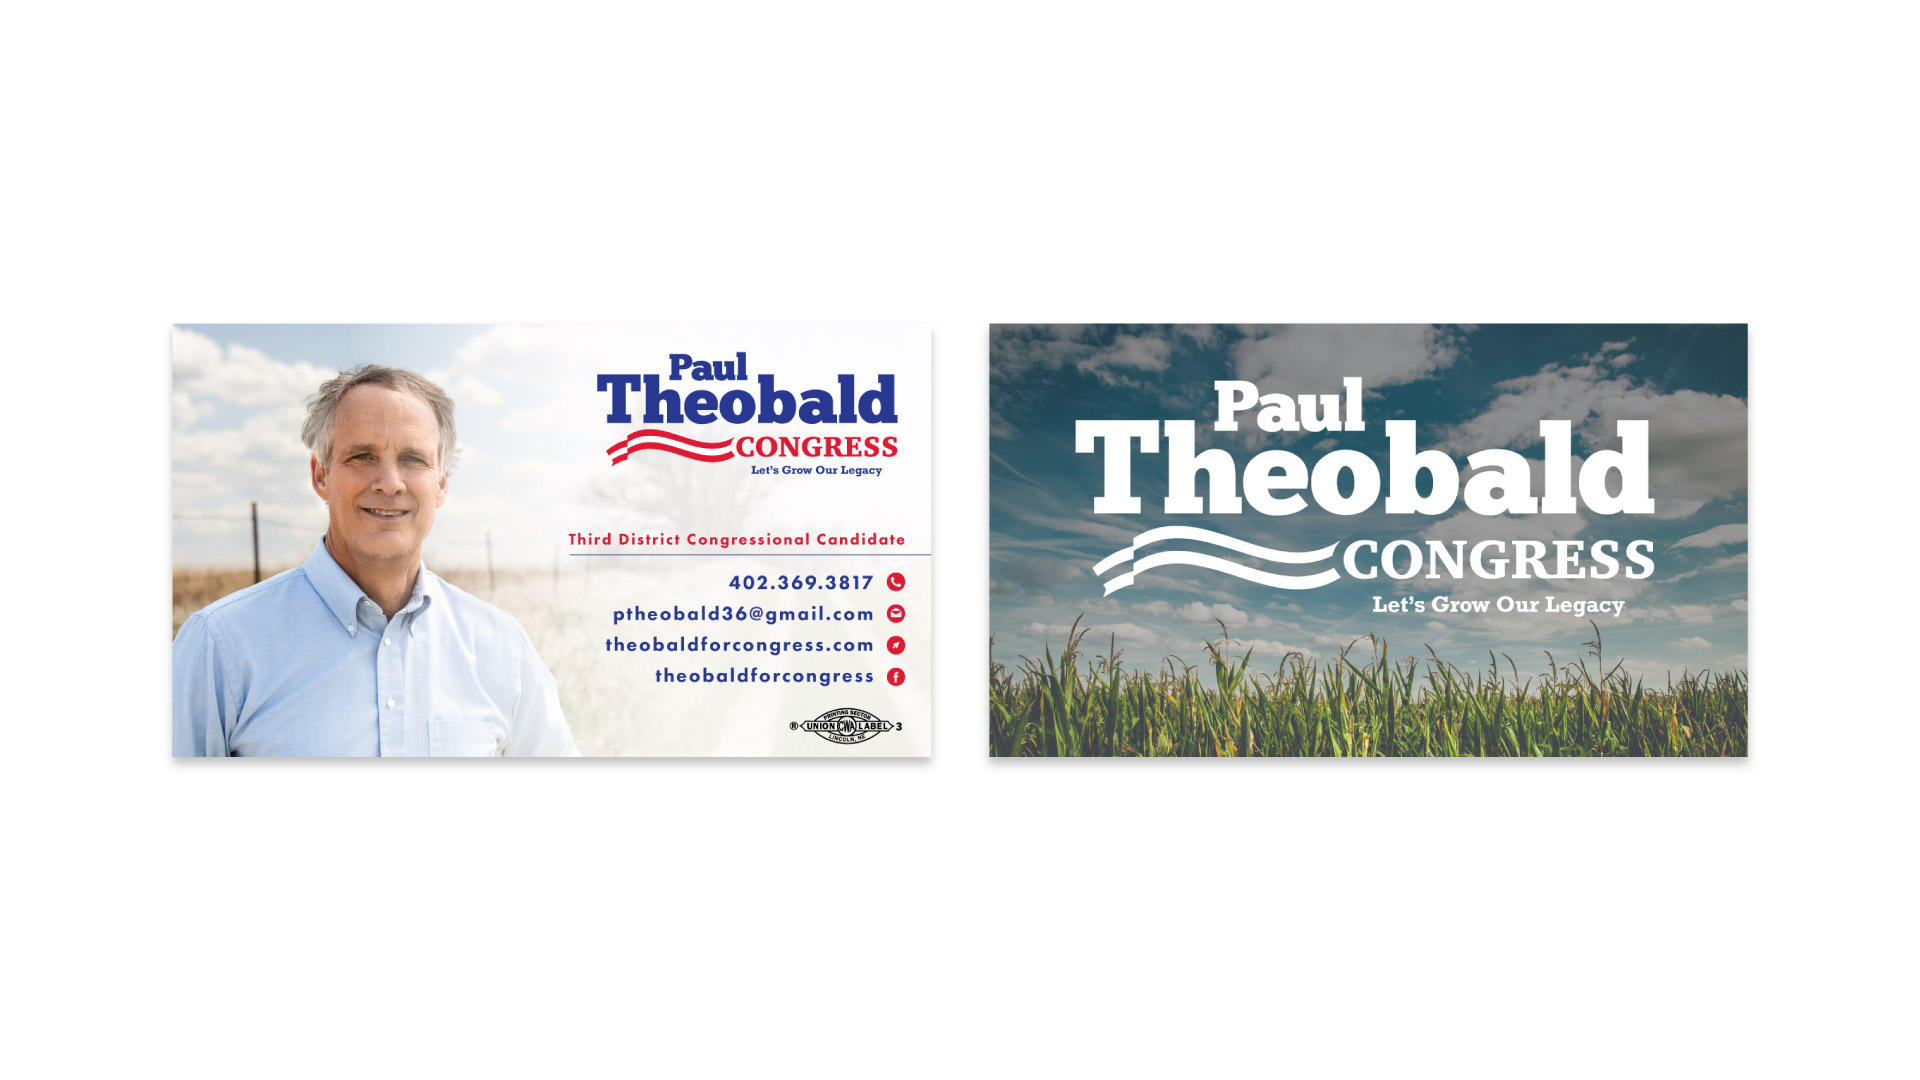 877's promotional print pieces for Paul Theobald's campaign2